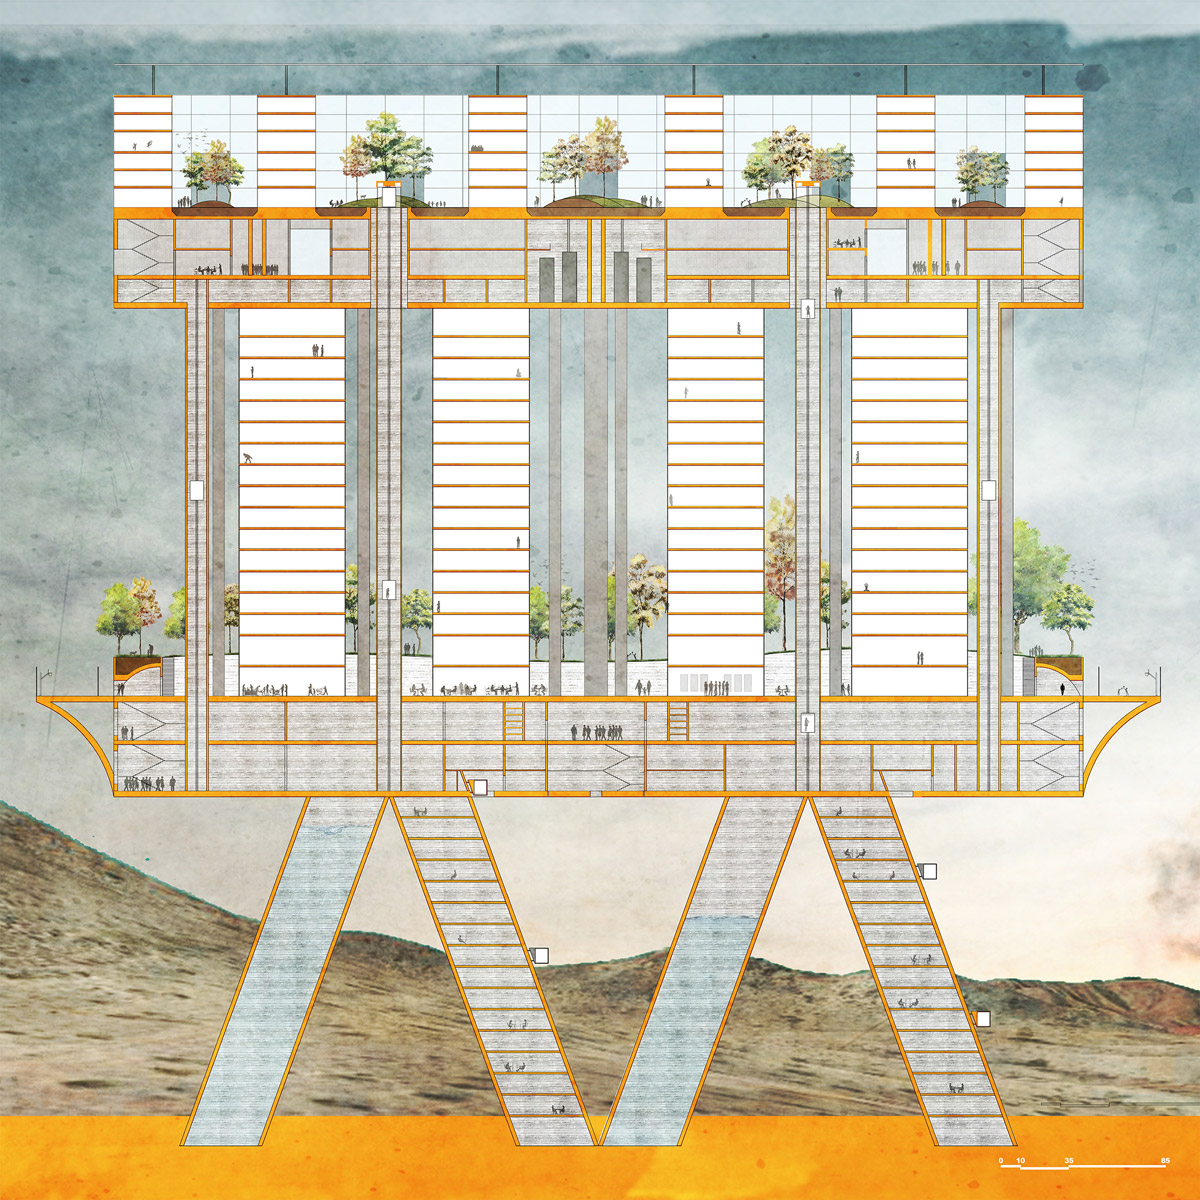 Section illustrating the layers and functions within a proposed self-sustaining housing block by student Monique Paulis